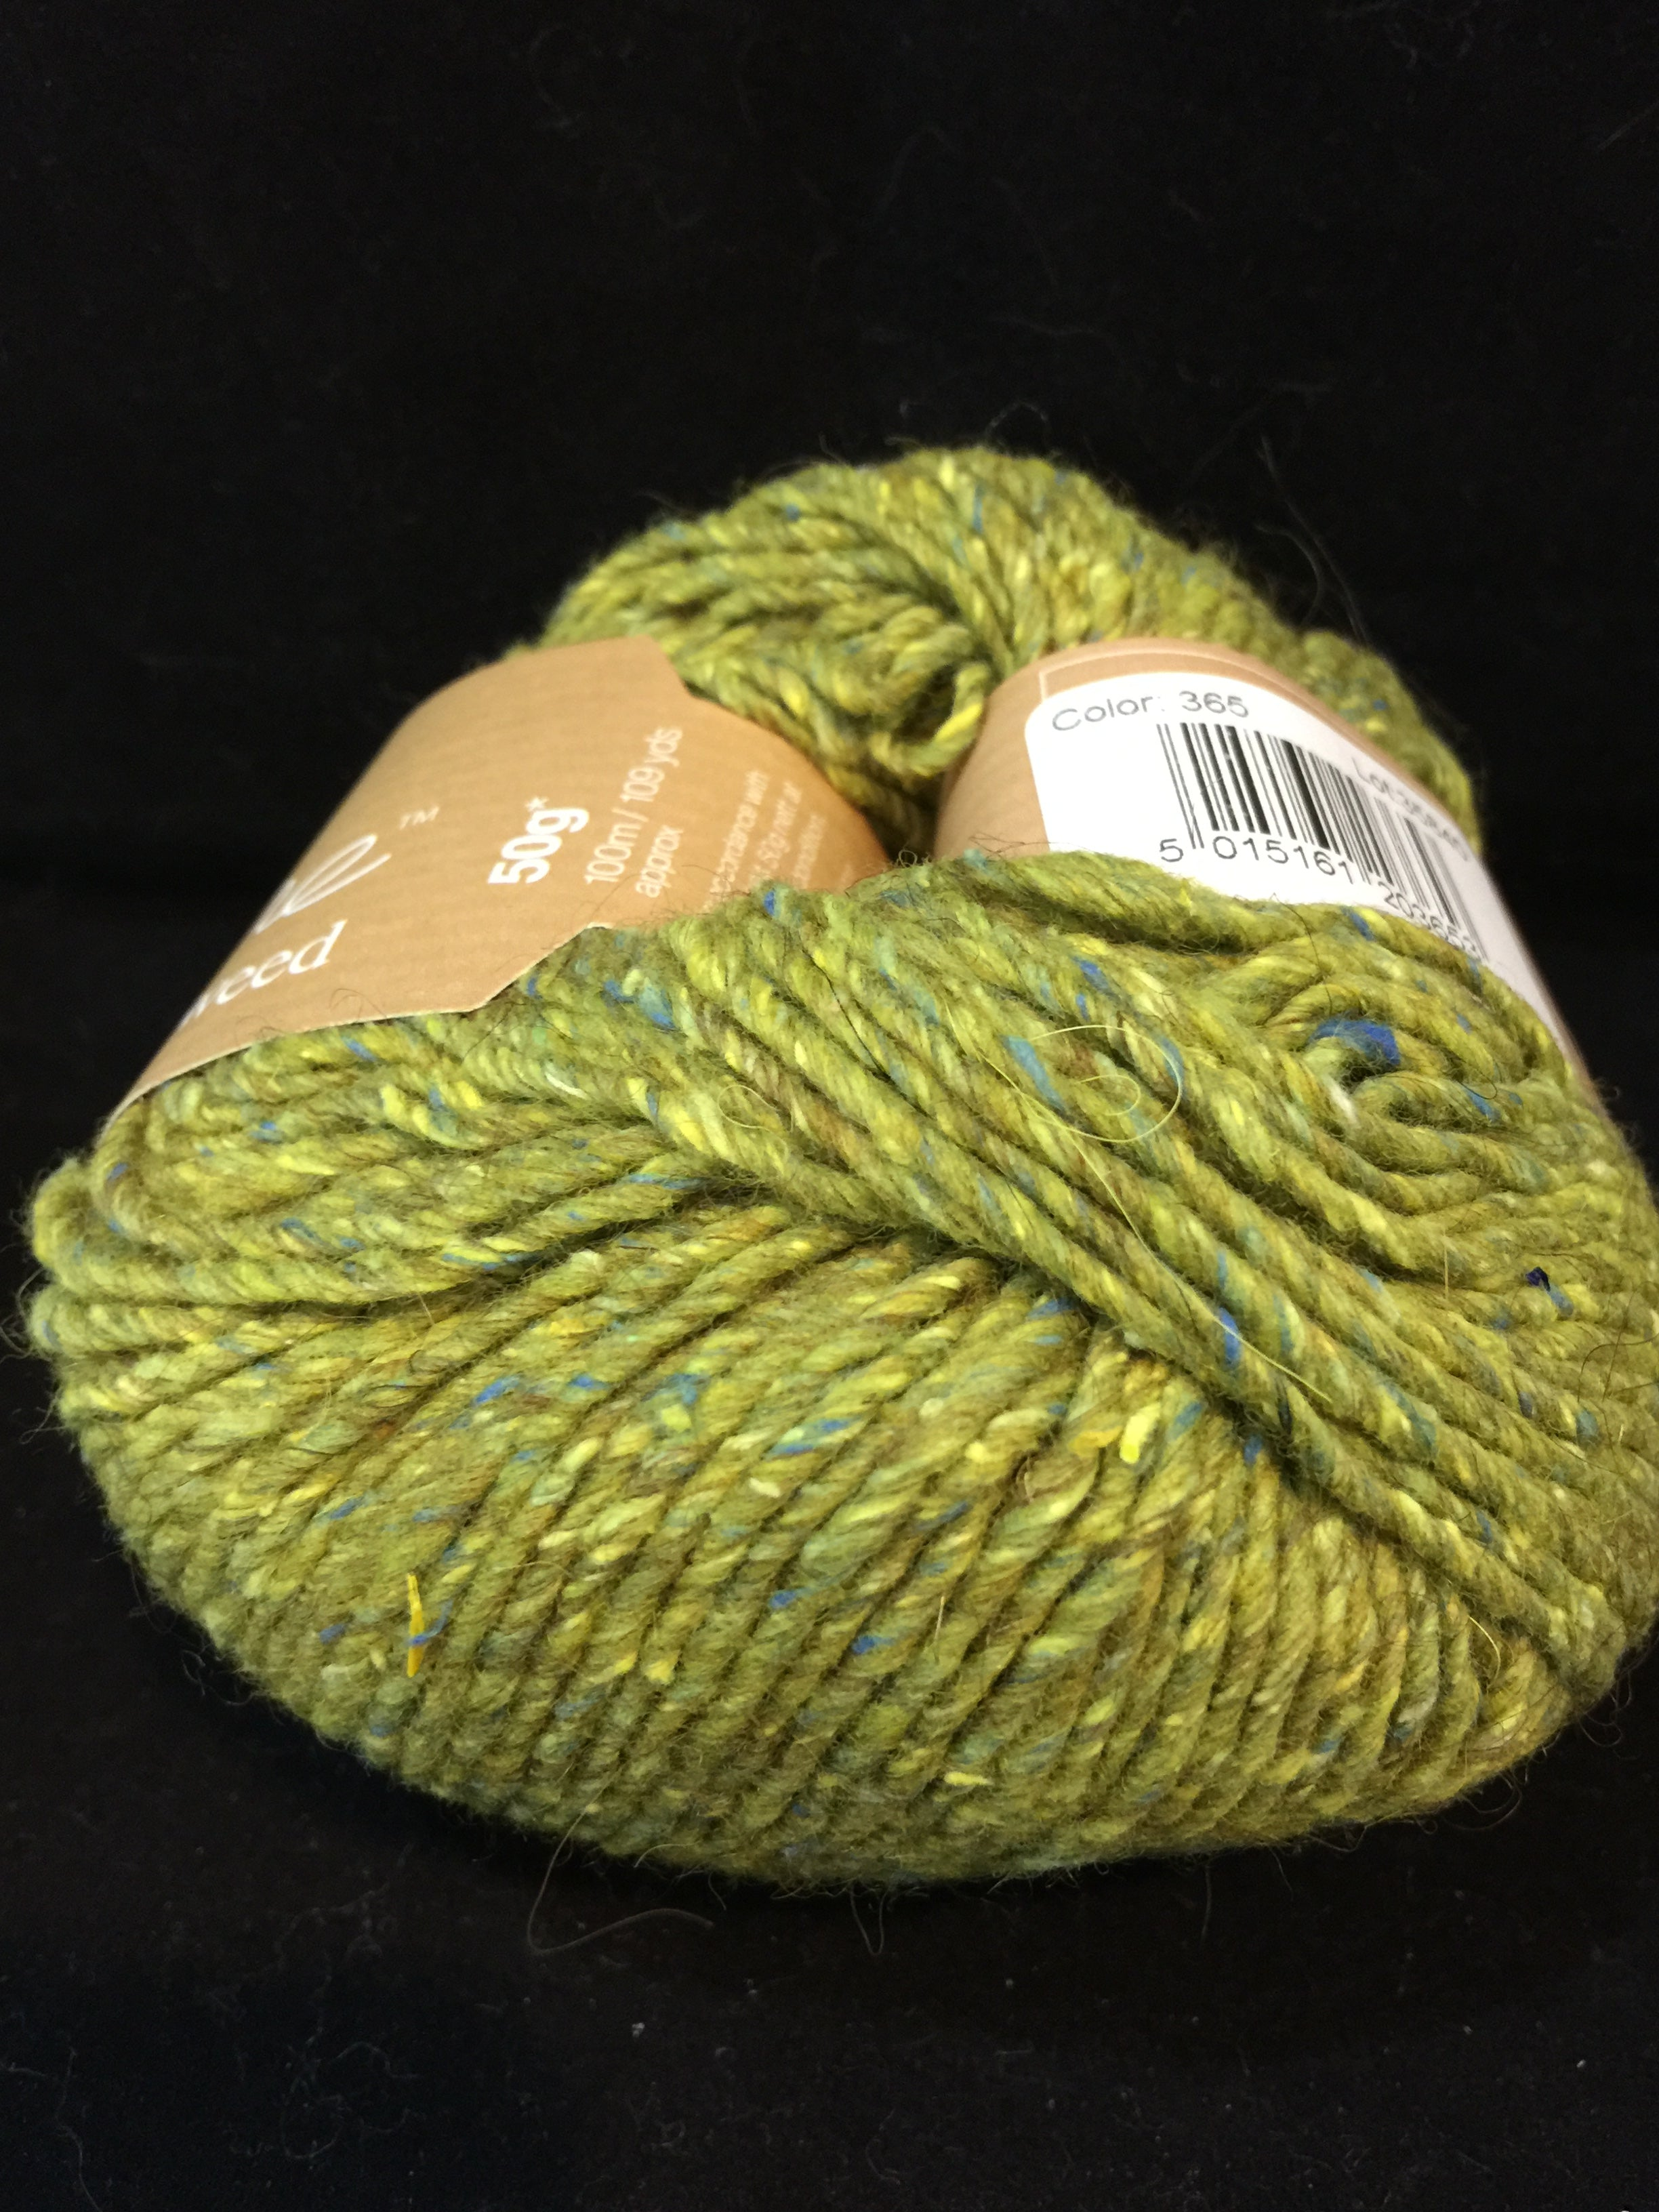 Sublime, Luxurious Aran Tweed, Wool, Cotton, Llama Blend, #4 Worsted Weight